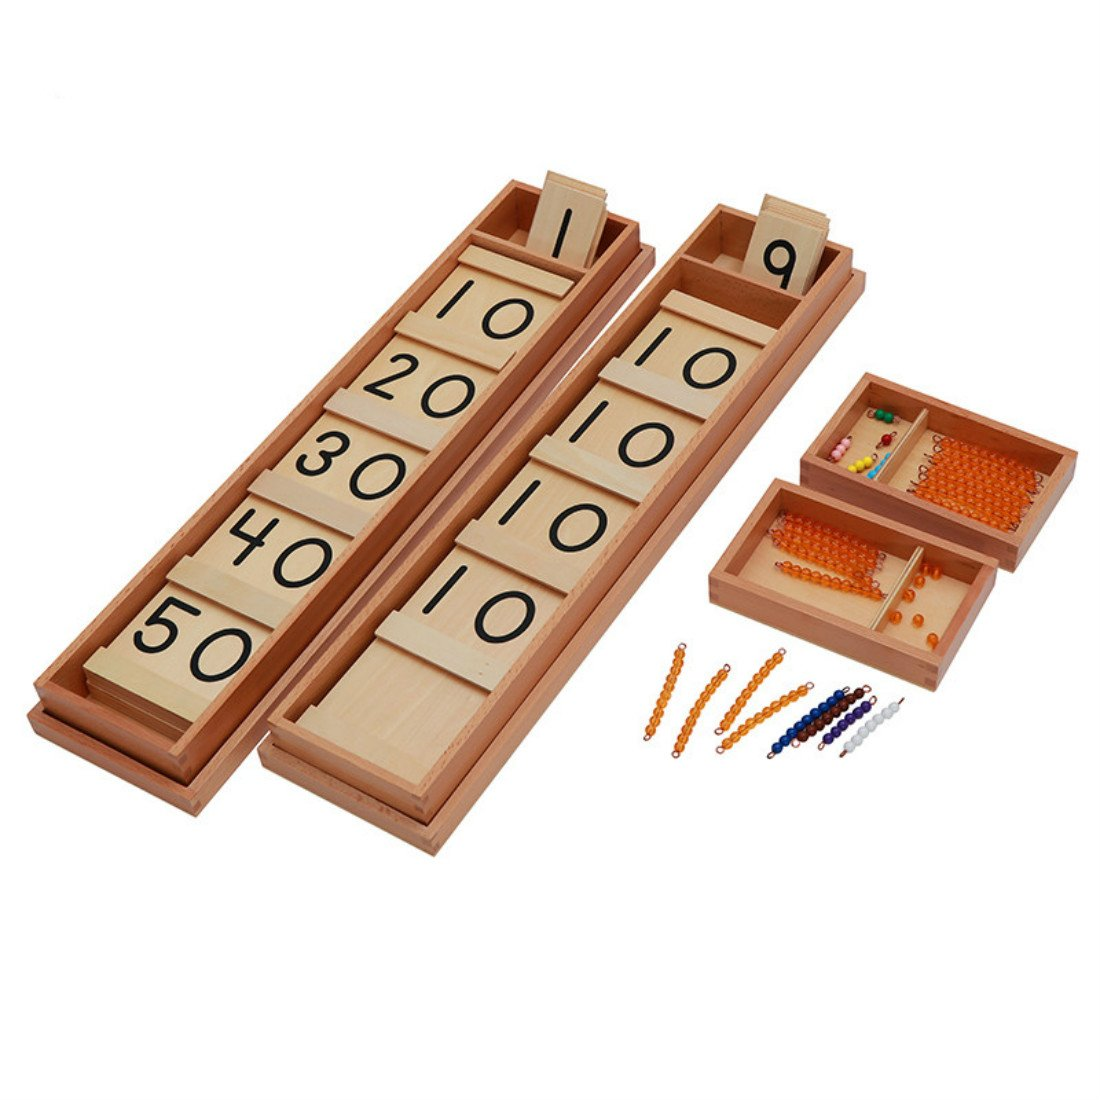 Montessori Math Teens and Tens Seguin Board with Bead Bars Wood Toys Early Childhood Education Preschool Training Baby by DANNI (Image #1)